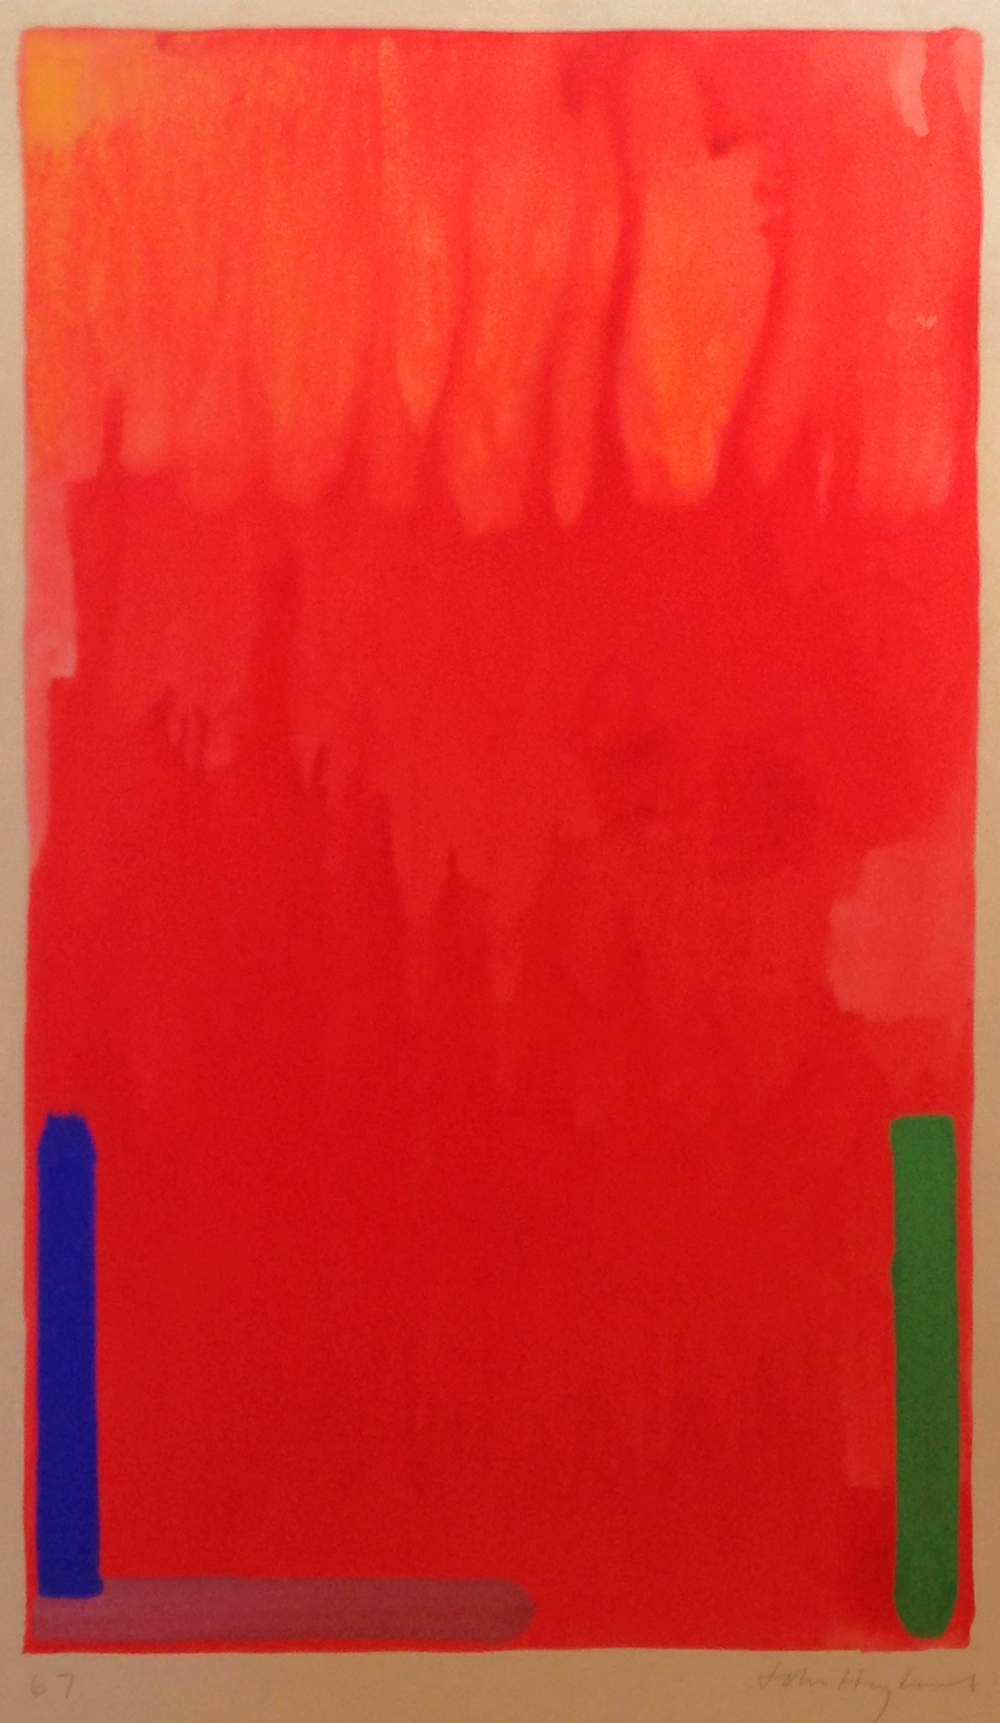 John Hoyland untitled, 1967 watercolor, 26 1/4 x 15 1/4